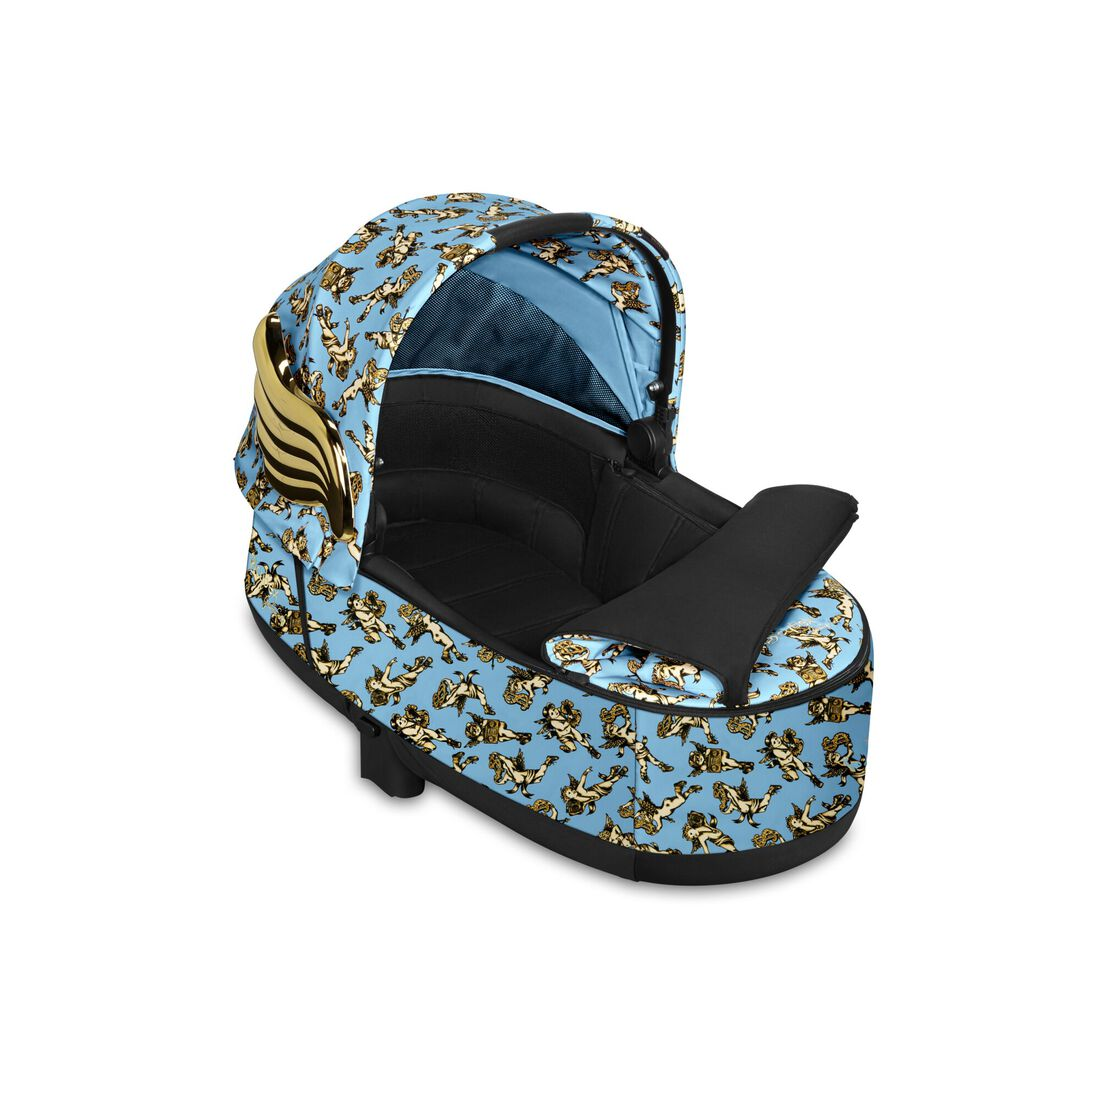 CYBEX Priam Lux Carry Cot - Cherubs Blue in Cherubs Blue large image number 2